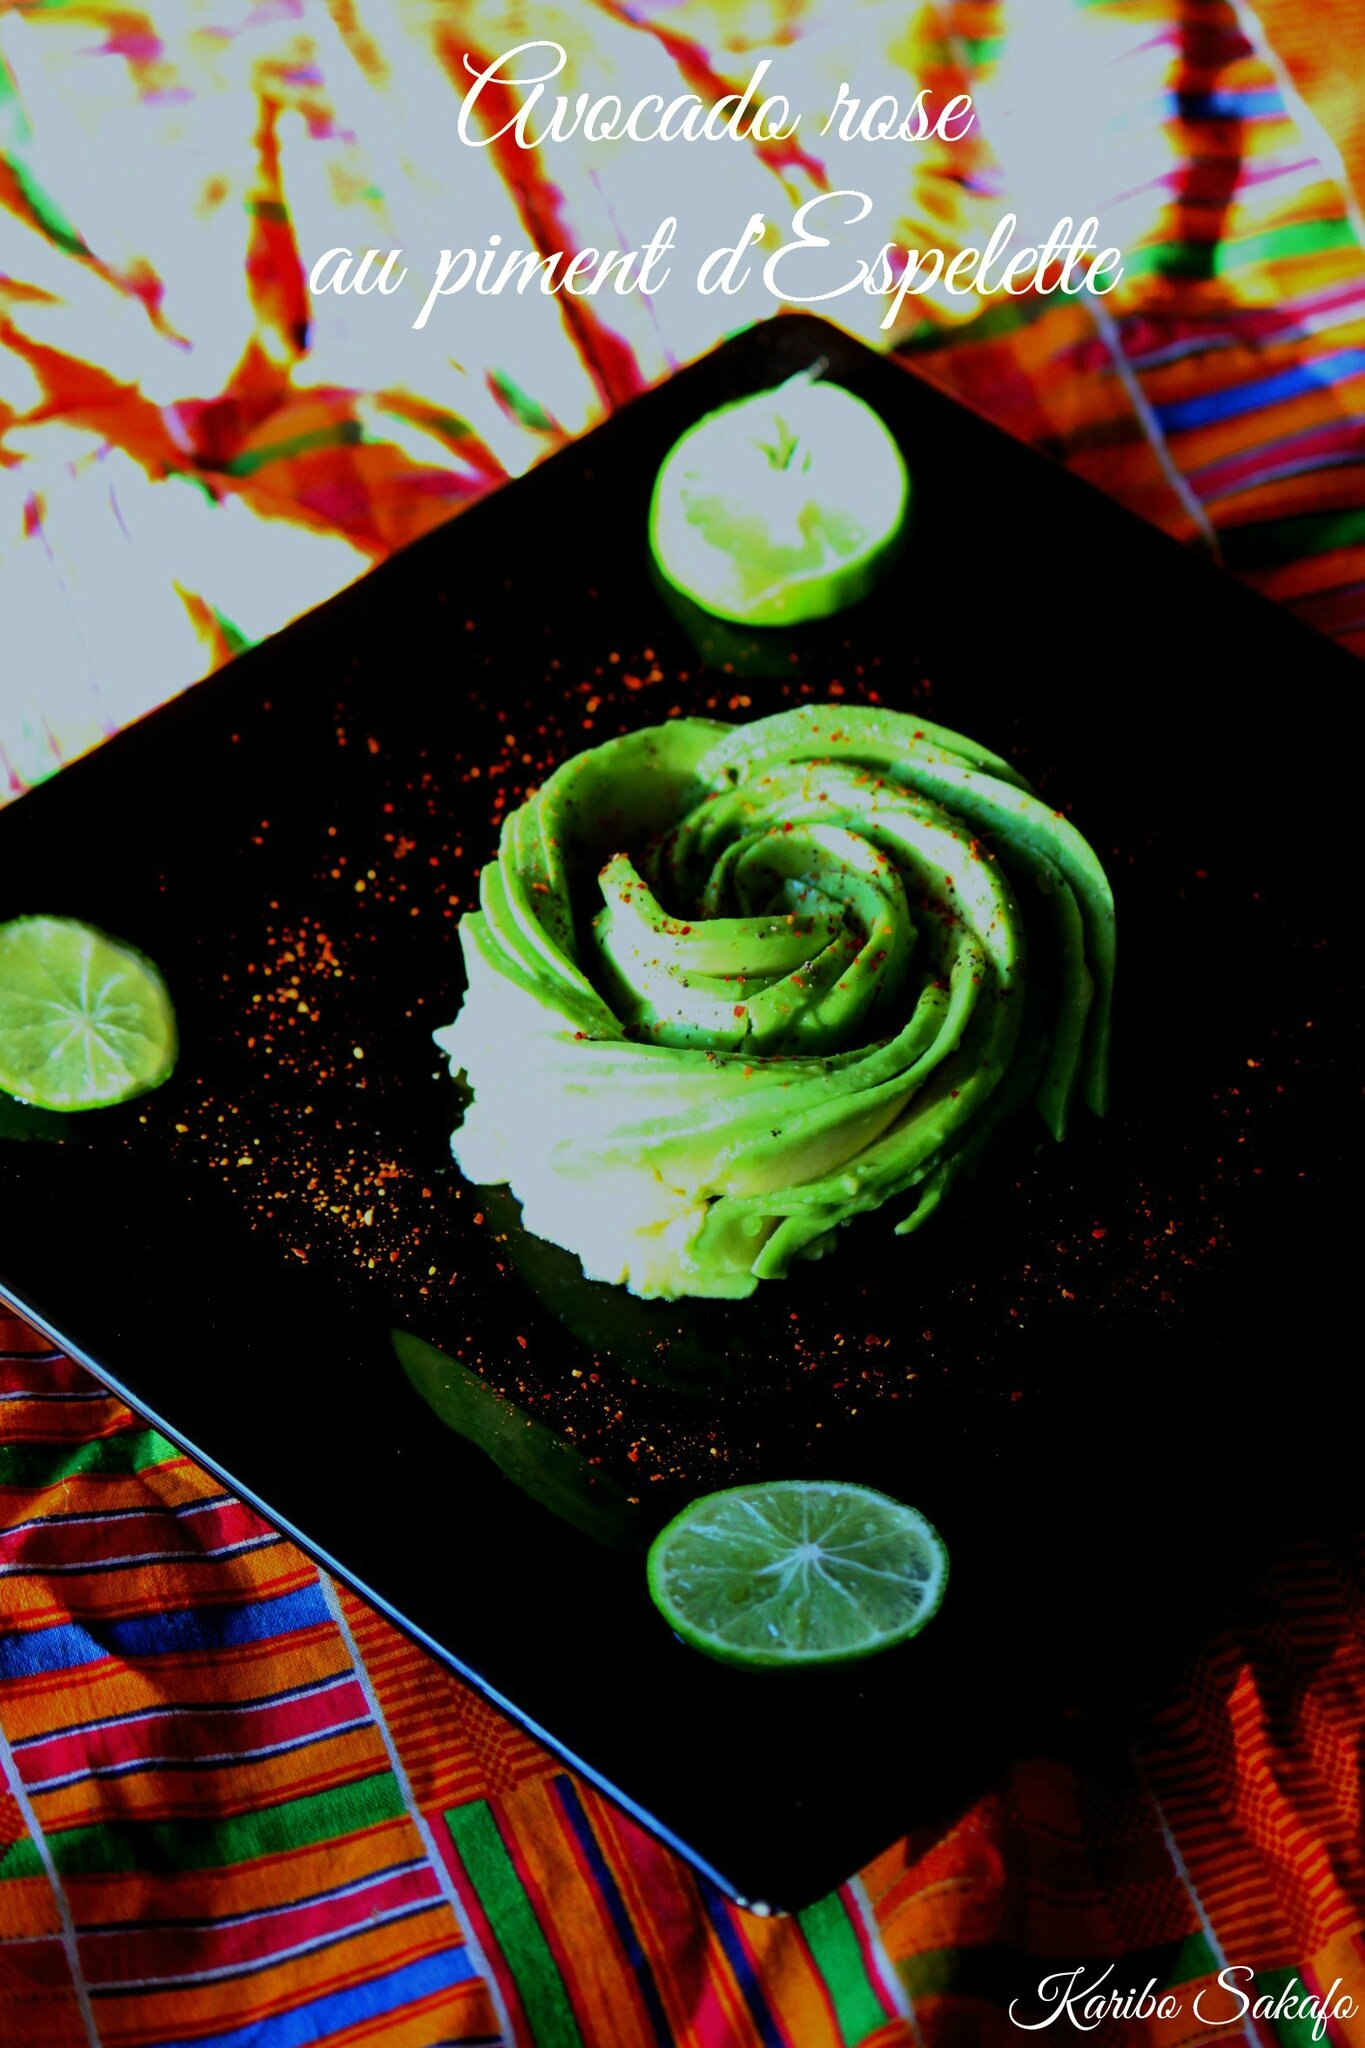 Avocado Rose au piment d'Espelette